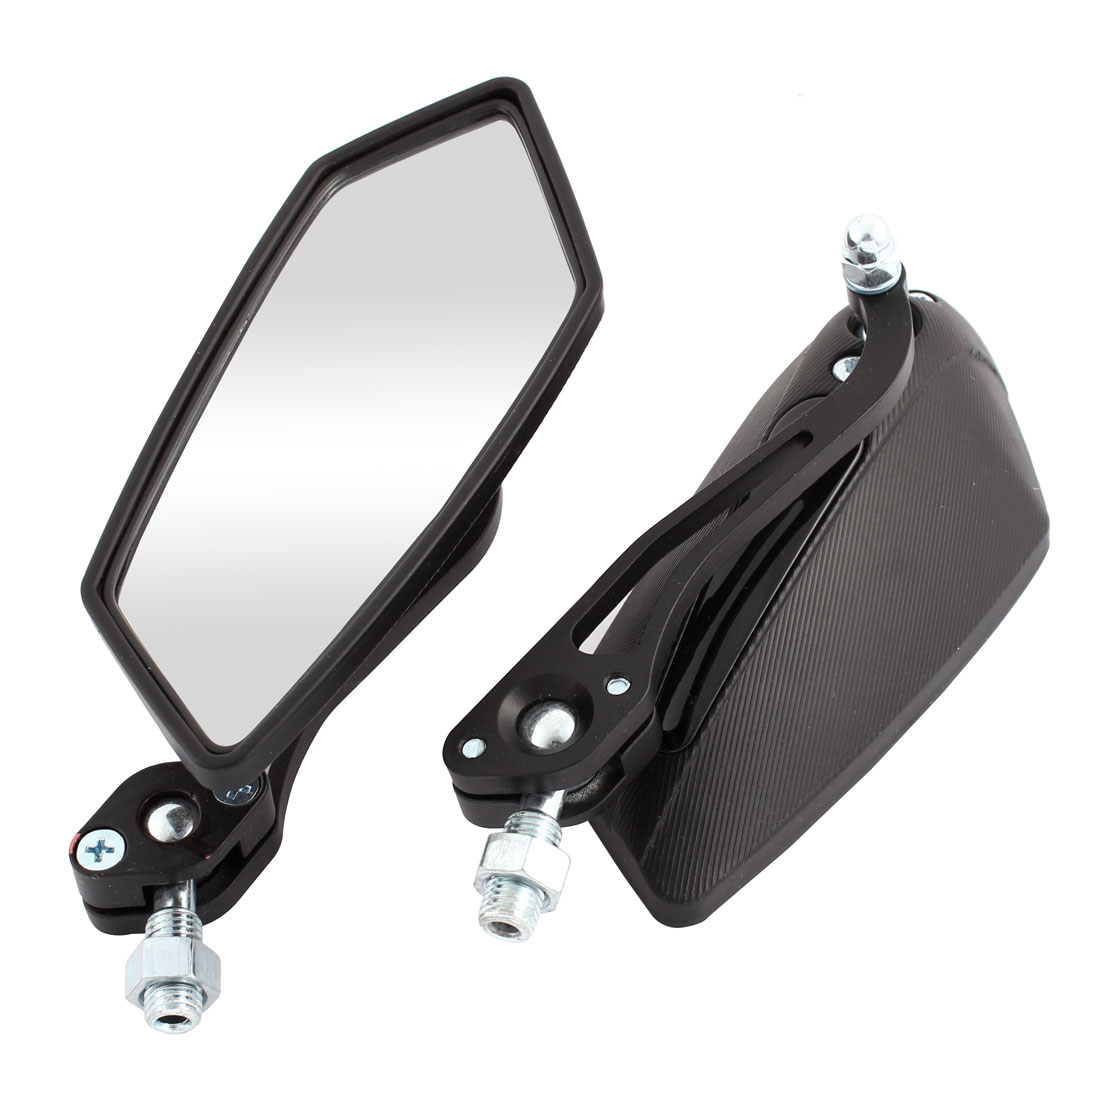 2 Pcs Black Polygon Design Rearview Mirrors for Motorcycle Motorbike